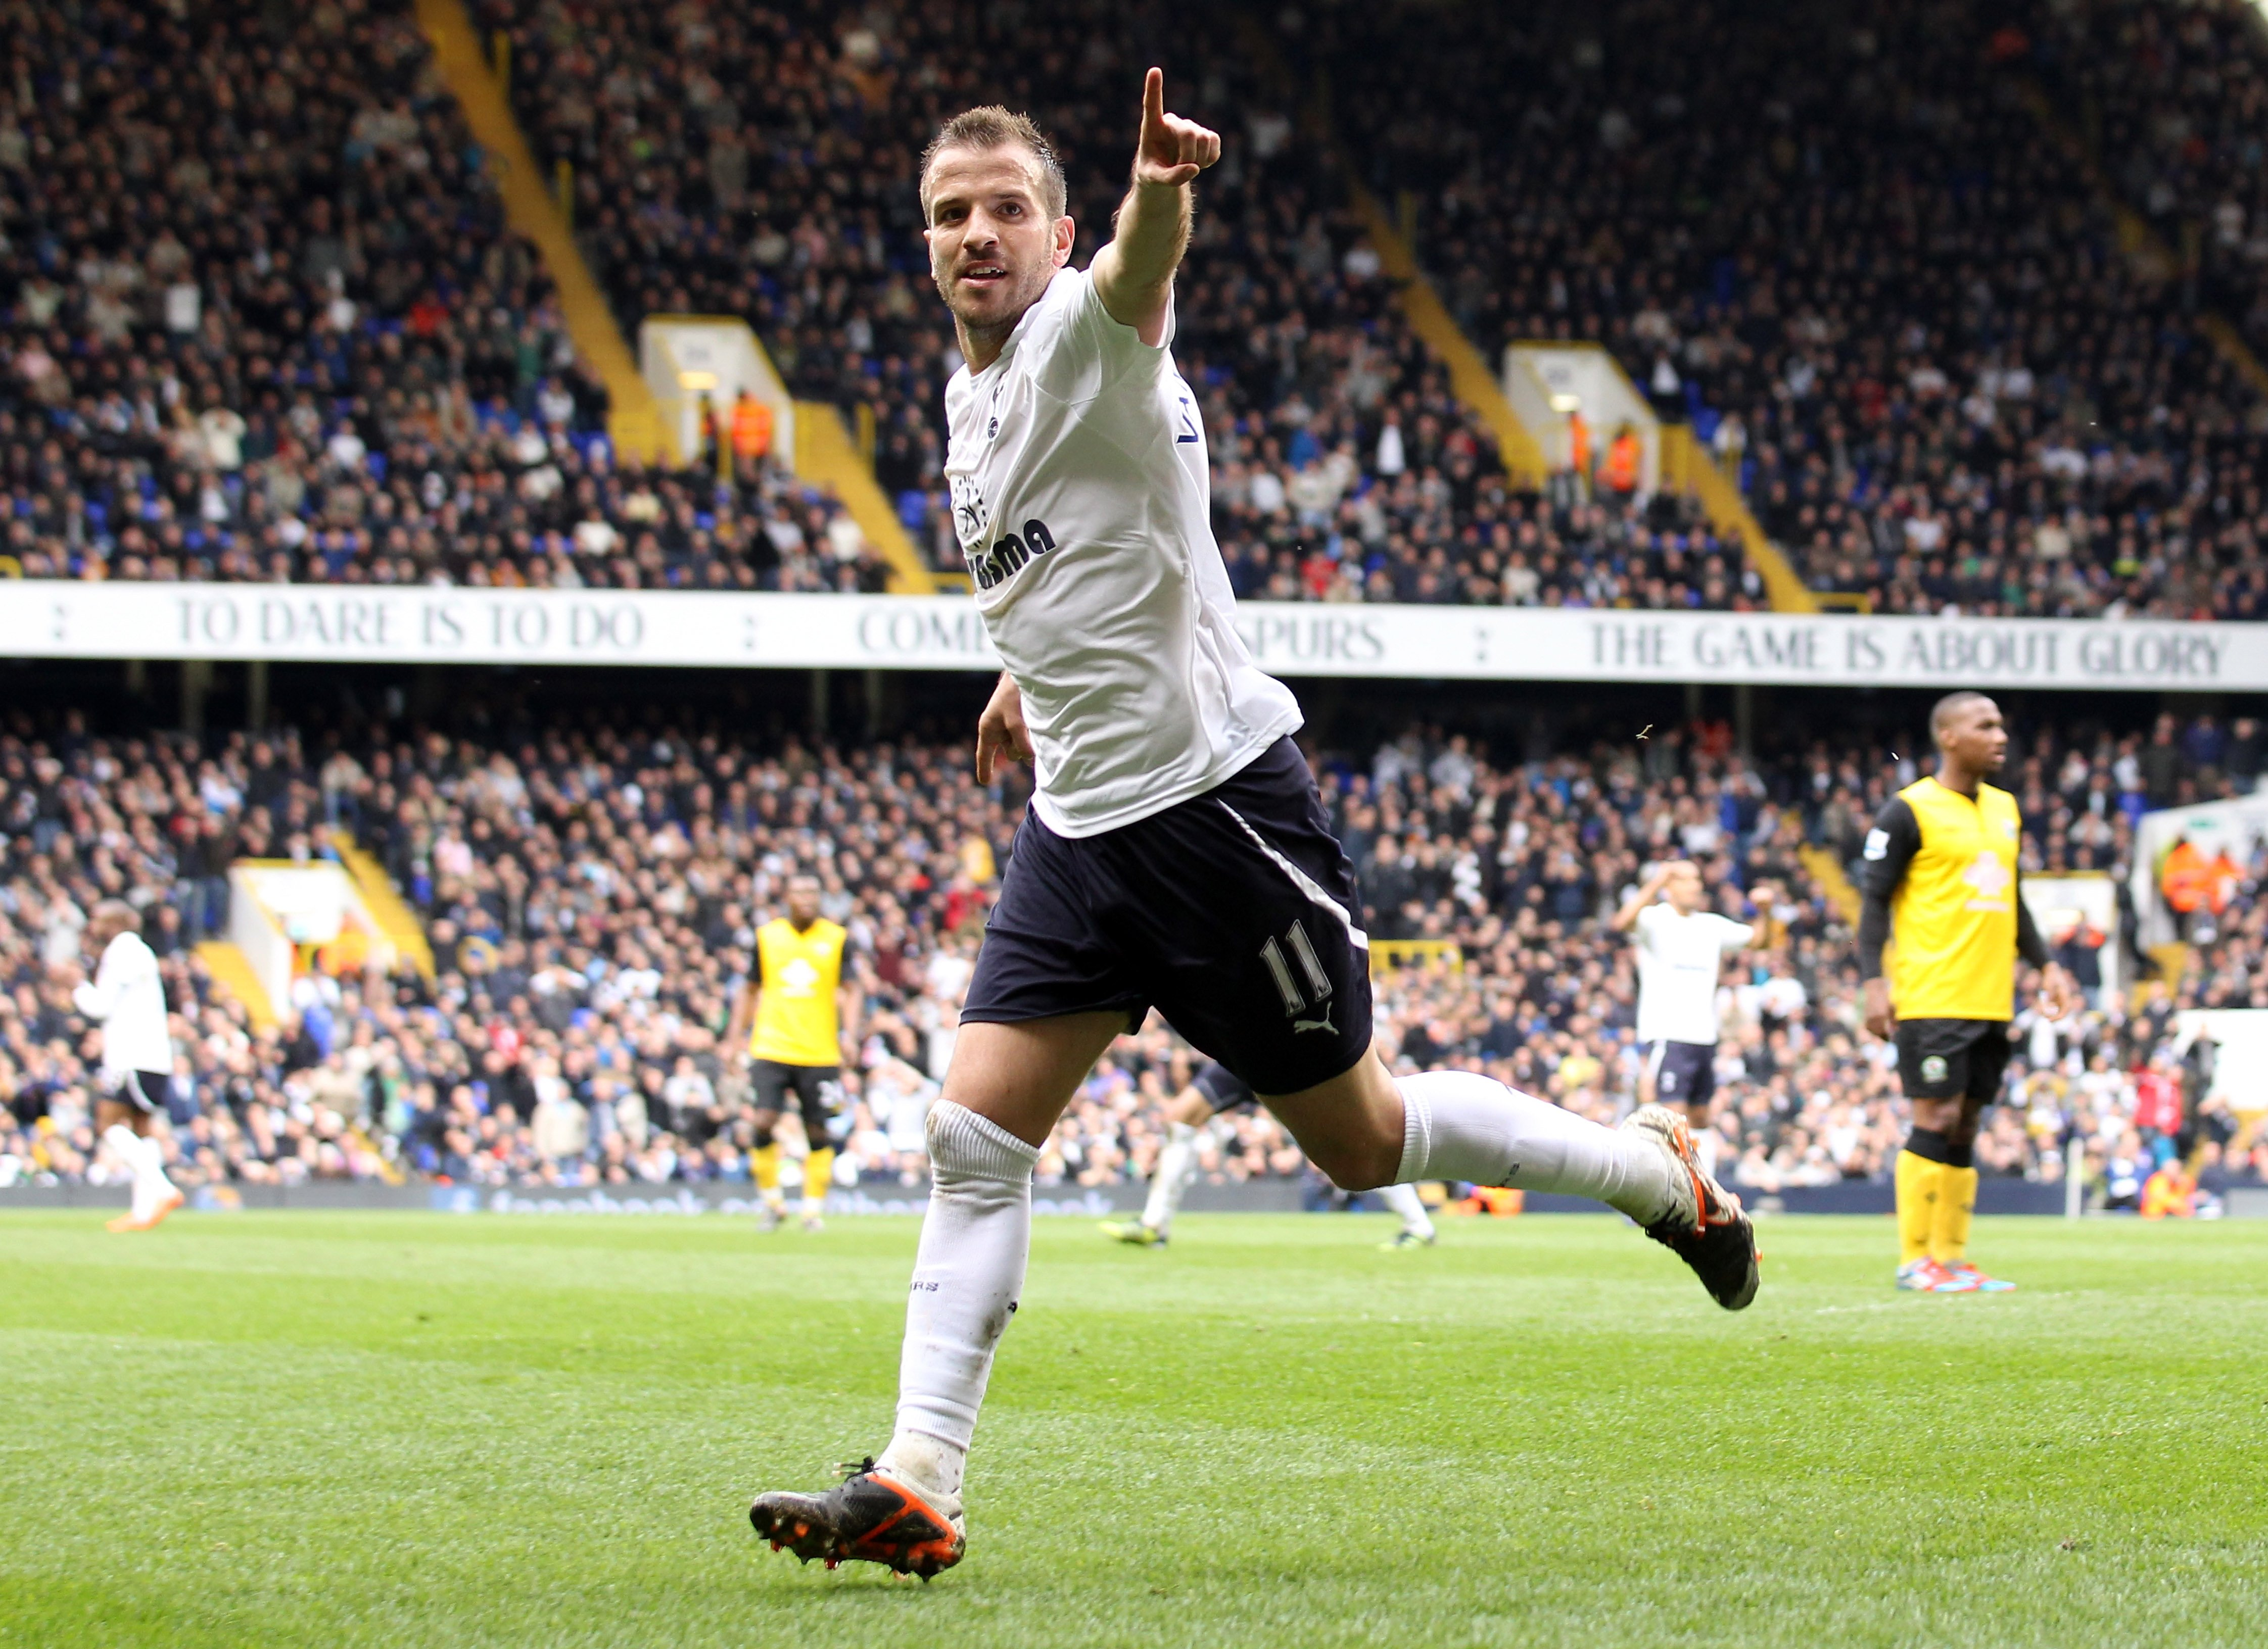 LONDON, ENGLAND - APRIL 29: Rafael van der Vaart of Spurs celebrates scoring the opening goal during the Barclays Premier League match between Tottenham Hotspur and Blackburn Rovers at White Hart Lane on April 29, 2012 in London, England.  (Photo by Scott Heavey/Getty Images)